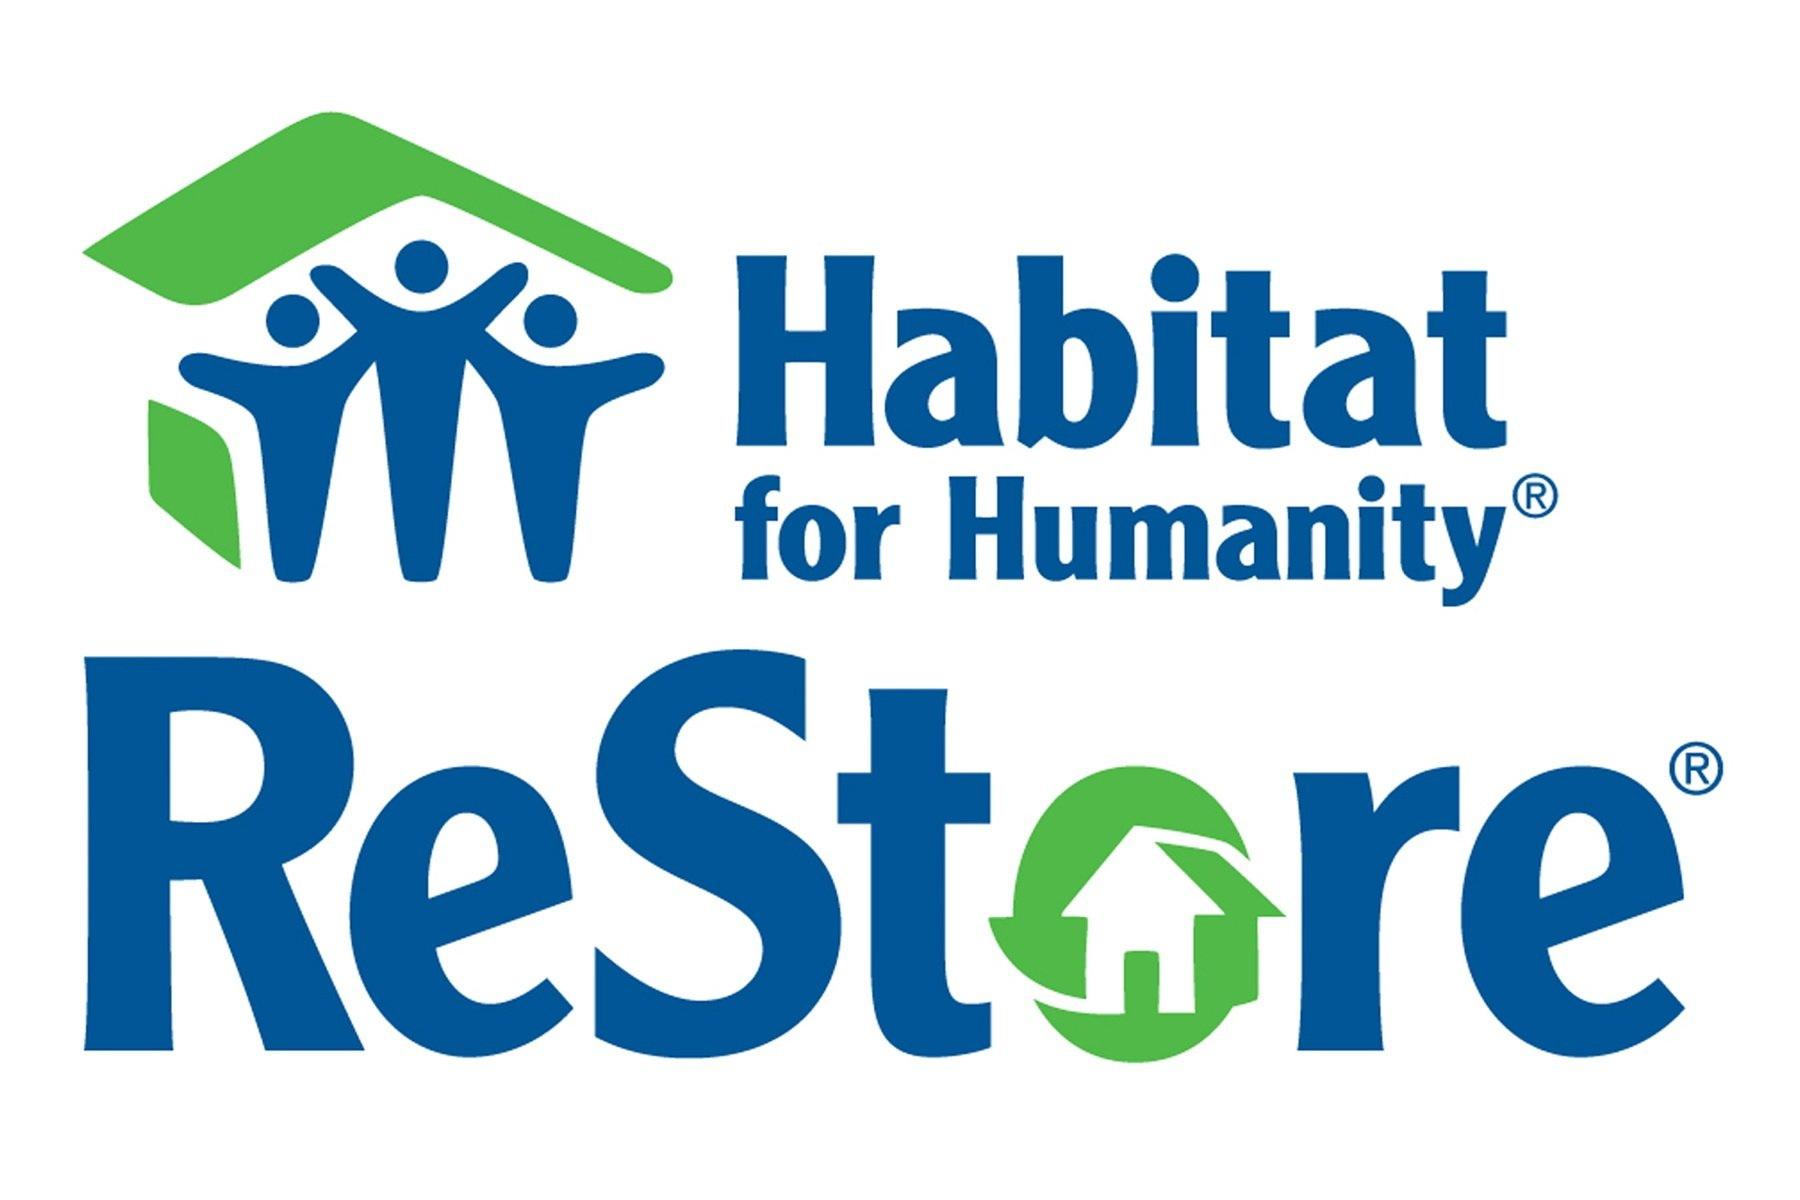 habitat for humanity.jpg